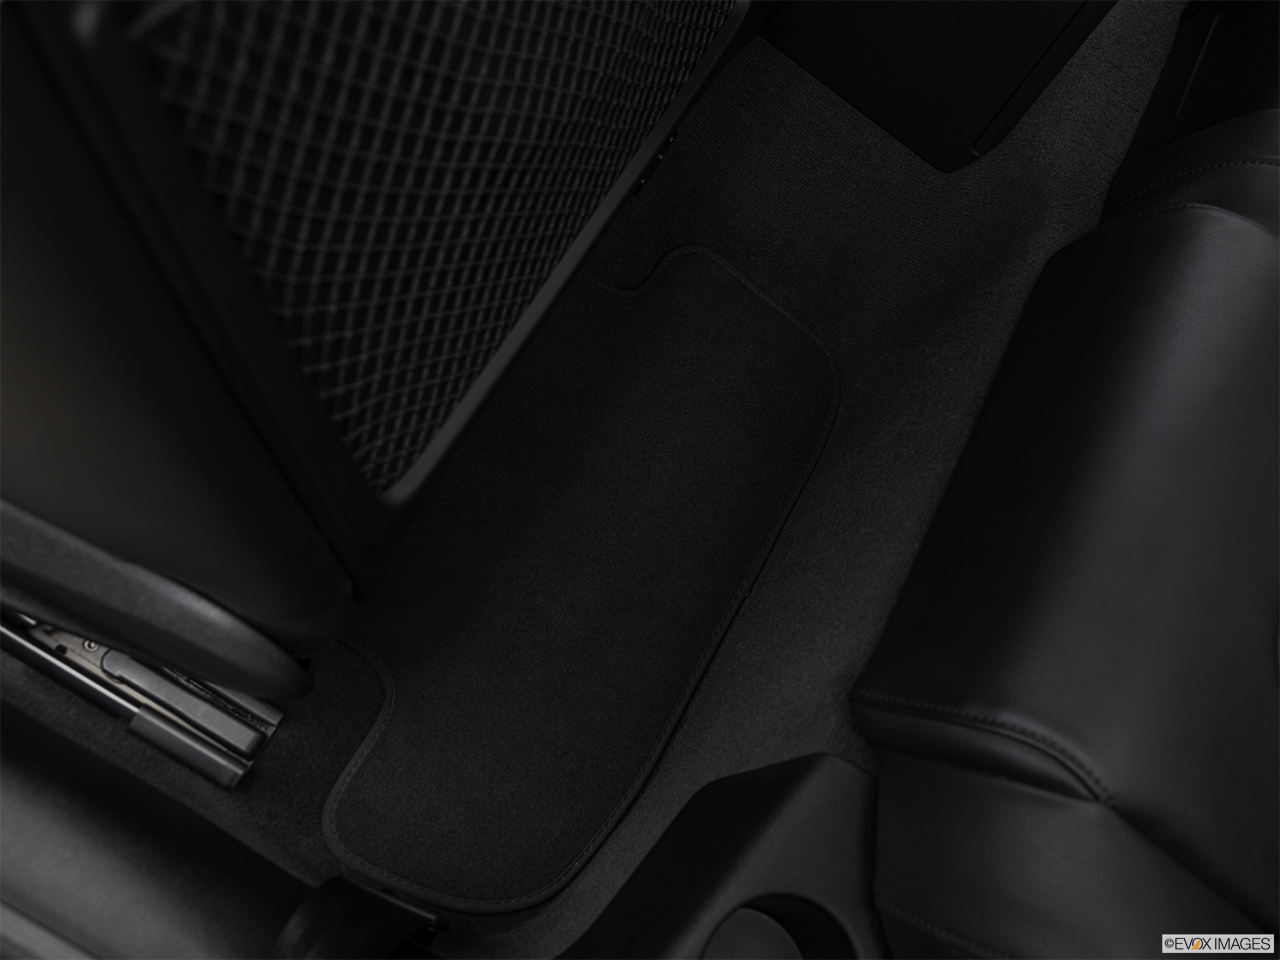 2017 Audi A5 Sport 2.0 TFSI Rear driver's side floor mat. Mid-seat level from outside looking in.